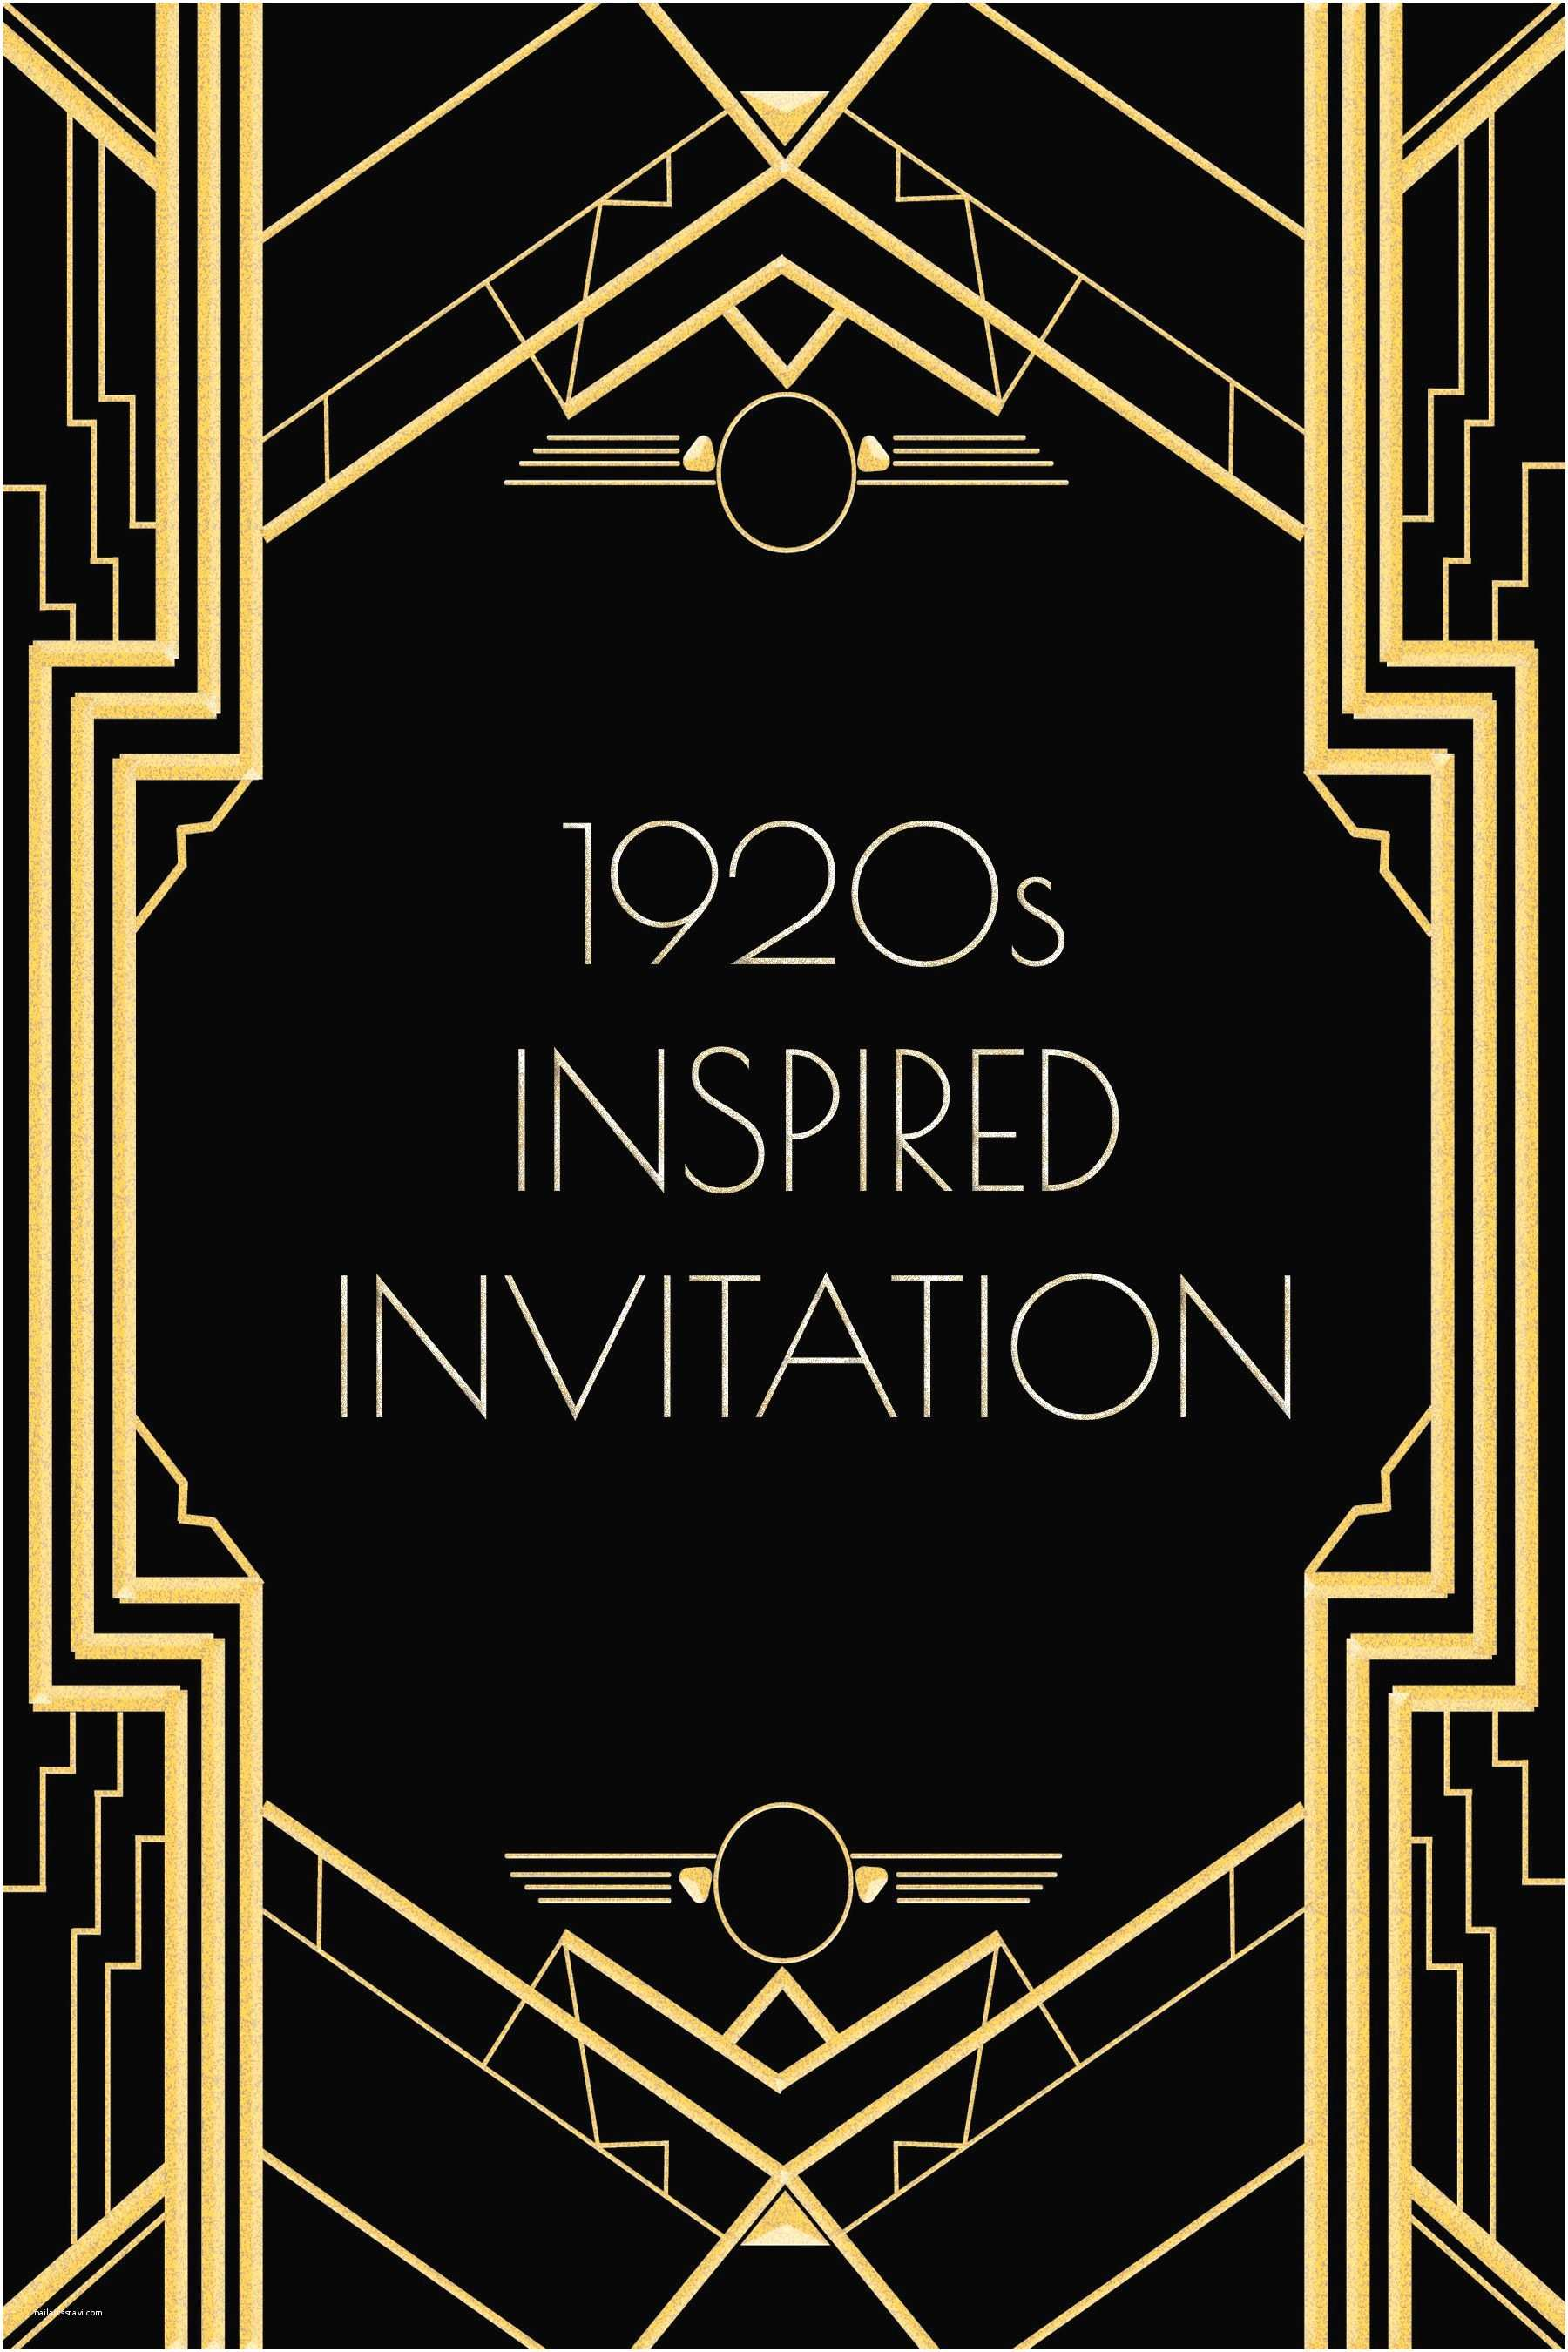 Gatsby Party Invitation Use This 1920s Inspired Invitation Template for A Gatsby